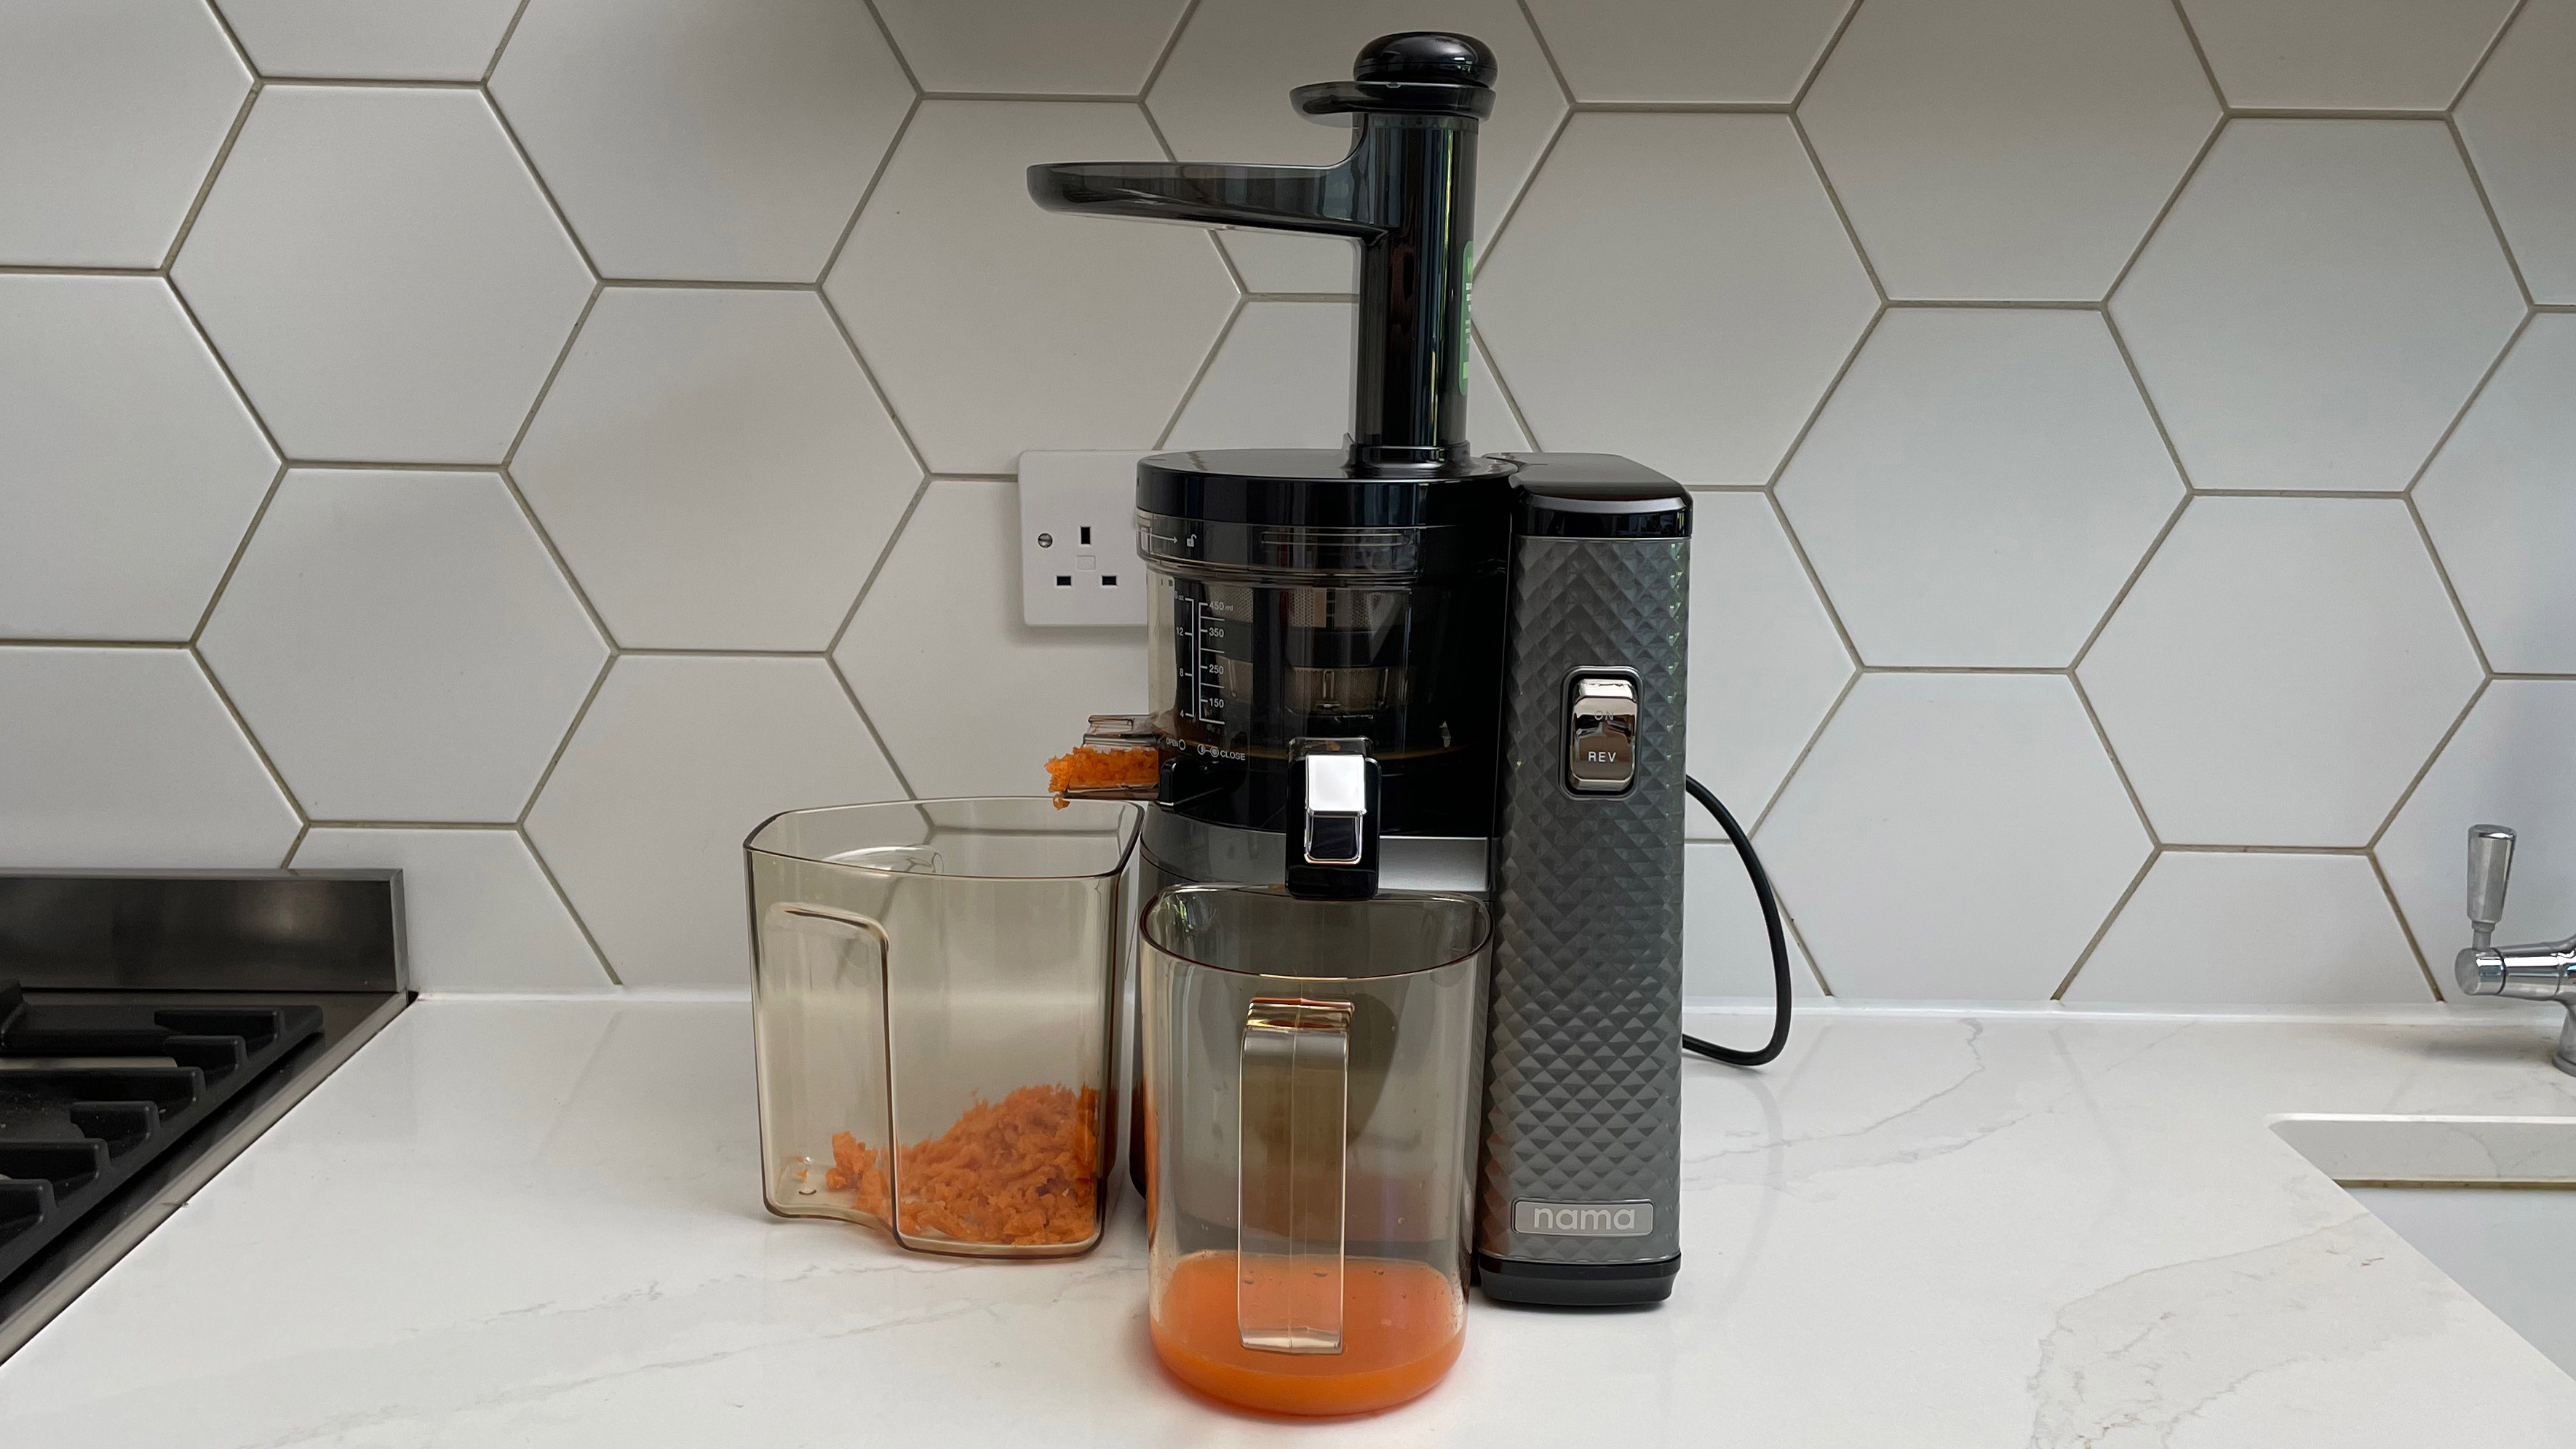 Nama Vitality 5800 on a kitchen countertop having been used to juice carrots